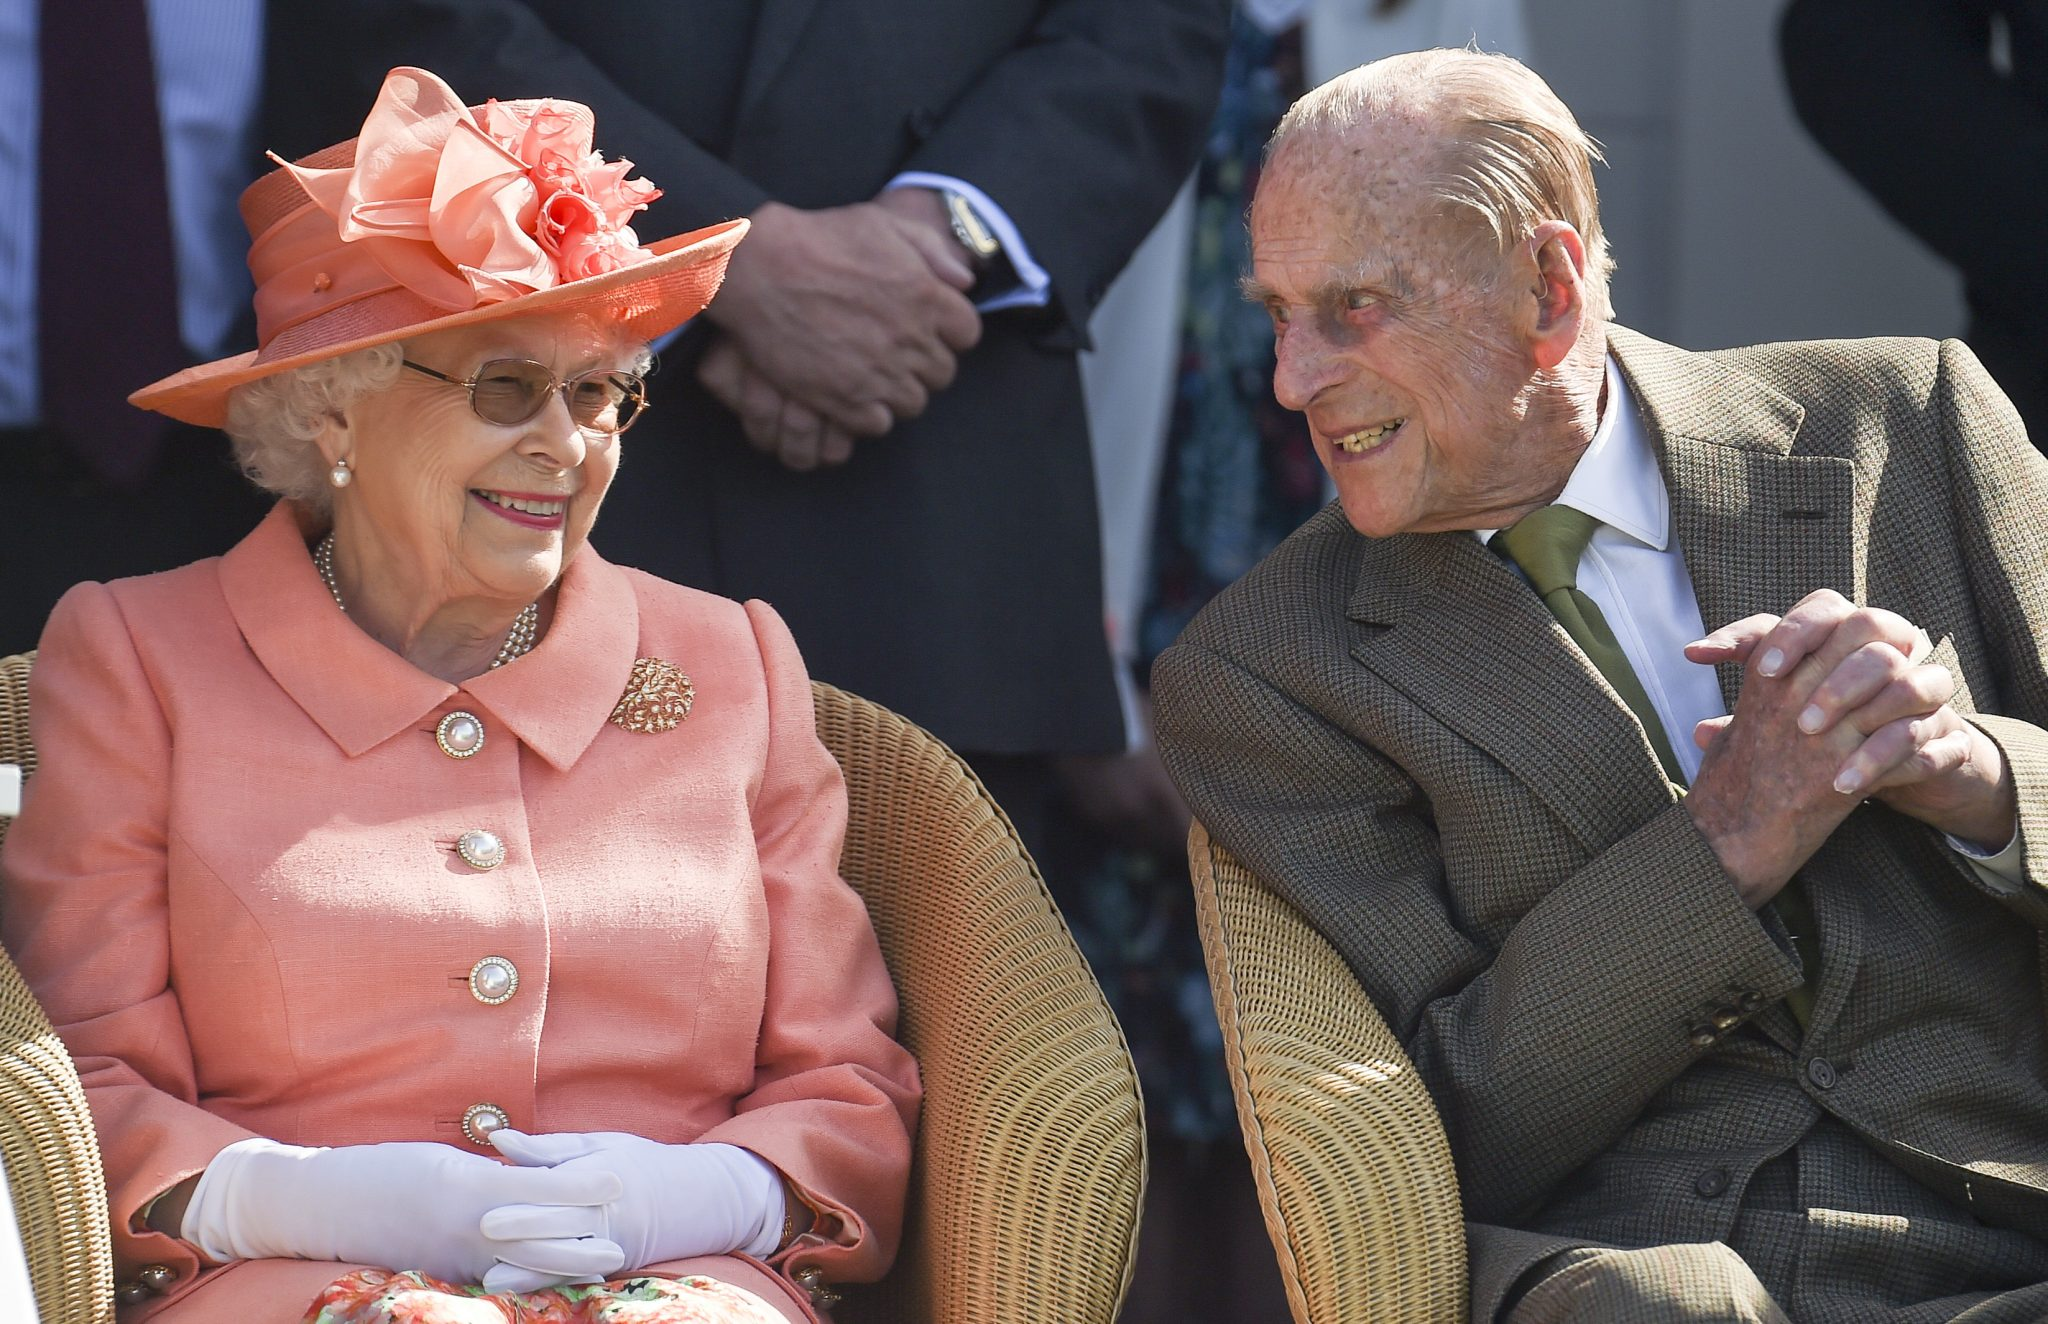 The Queen and Prince Phillip at the Royal Windsor Cup polo match in 2018